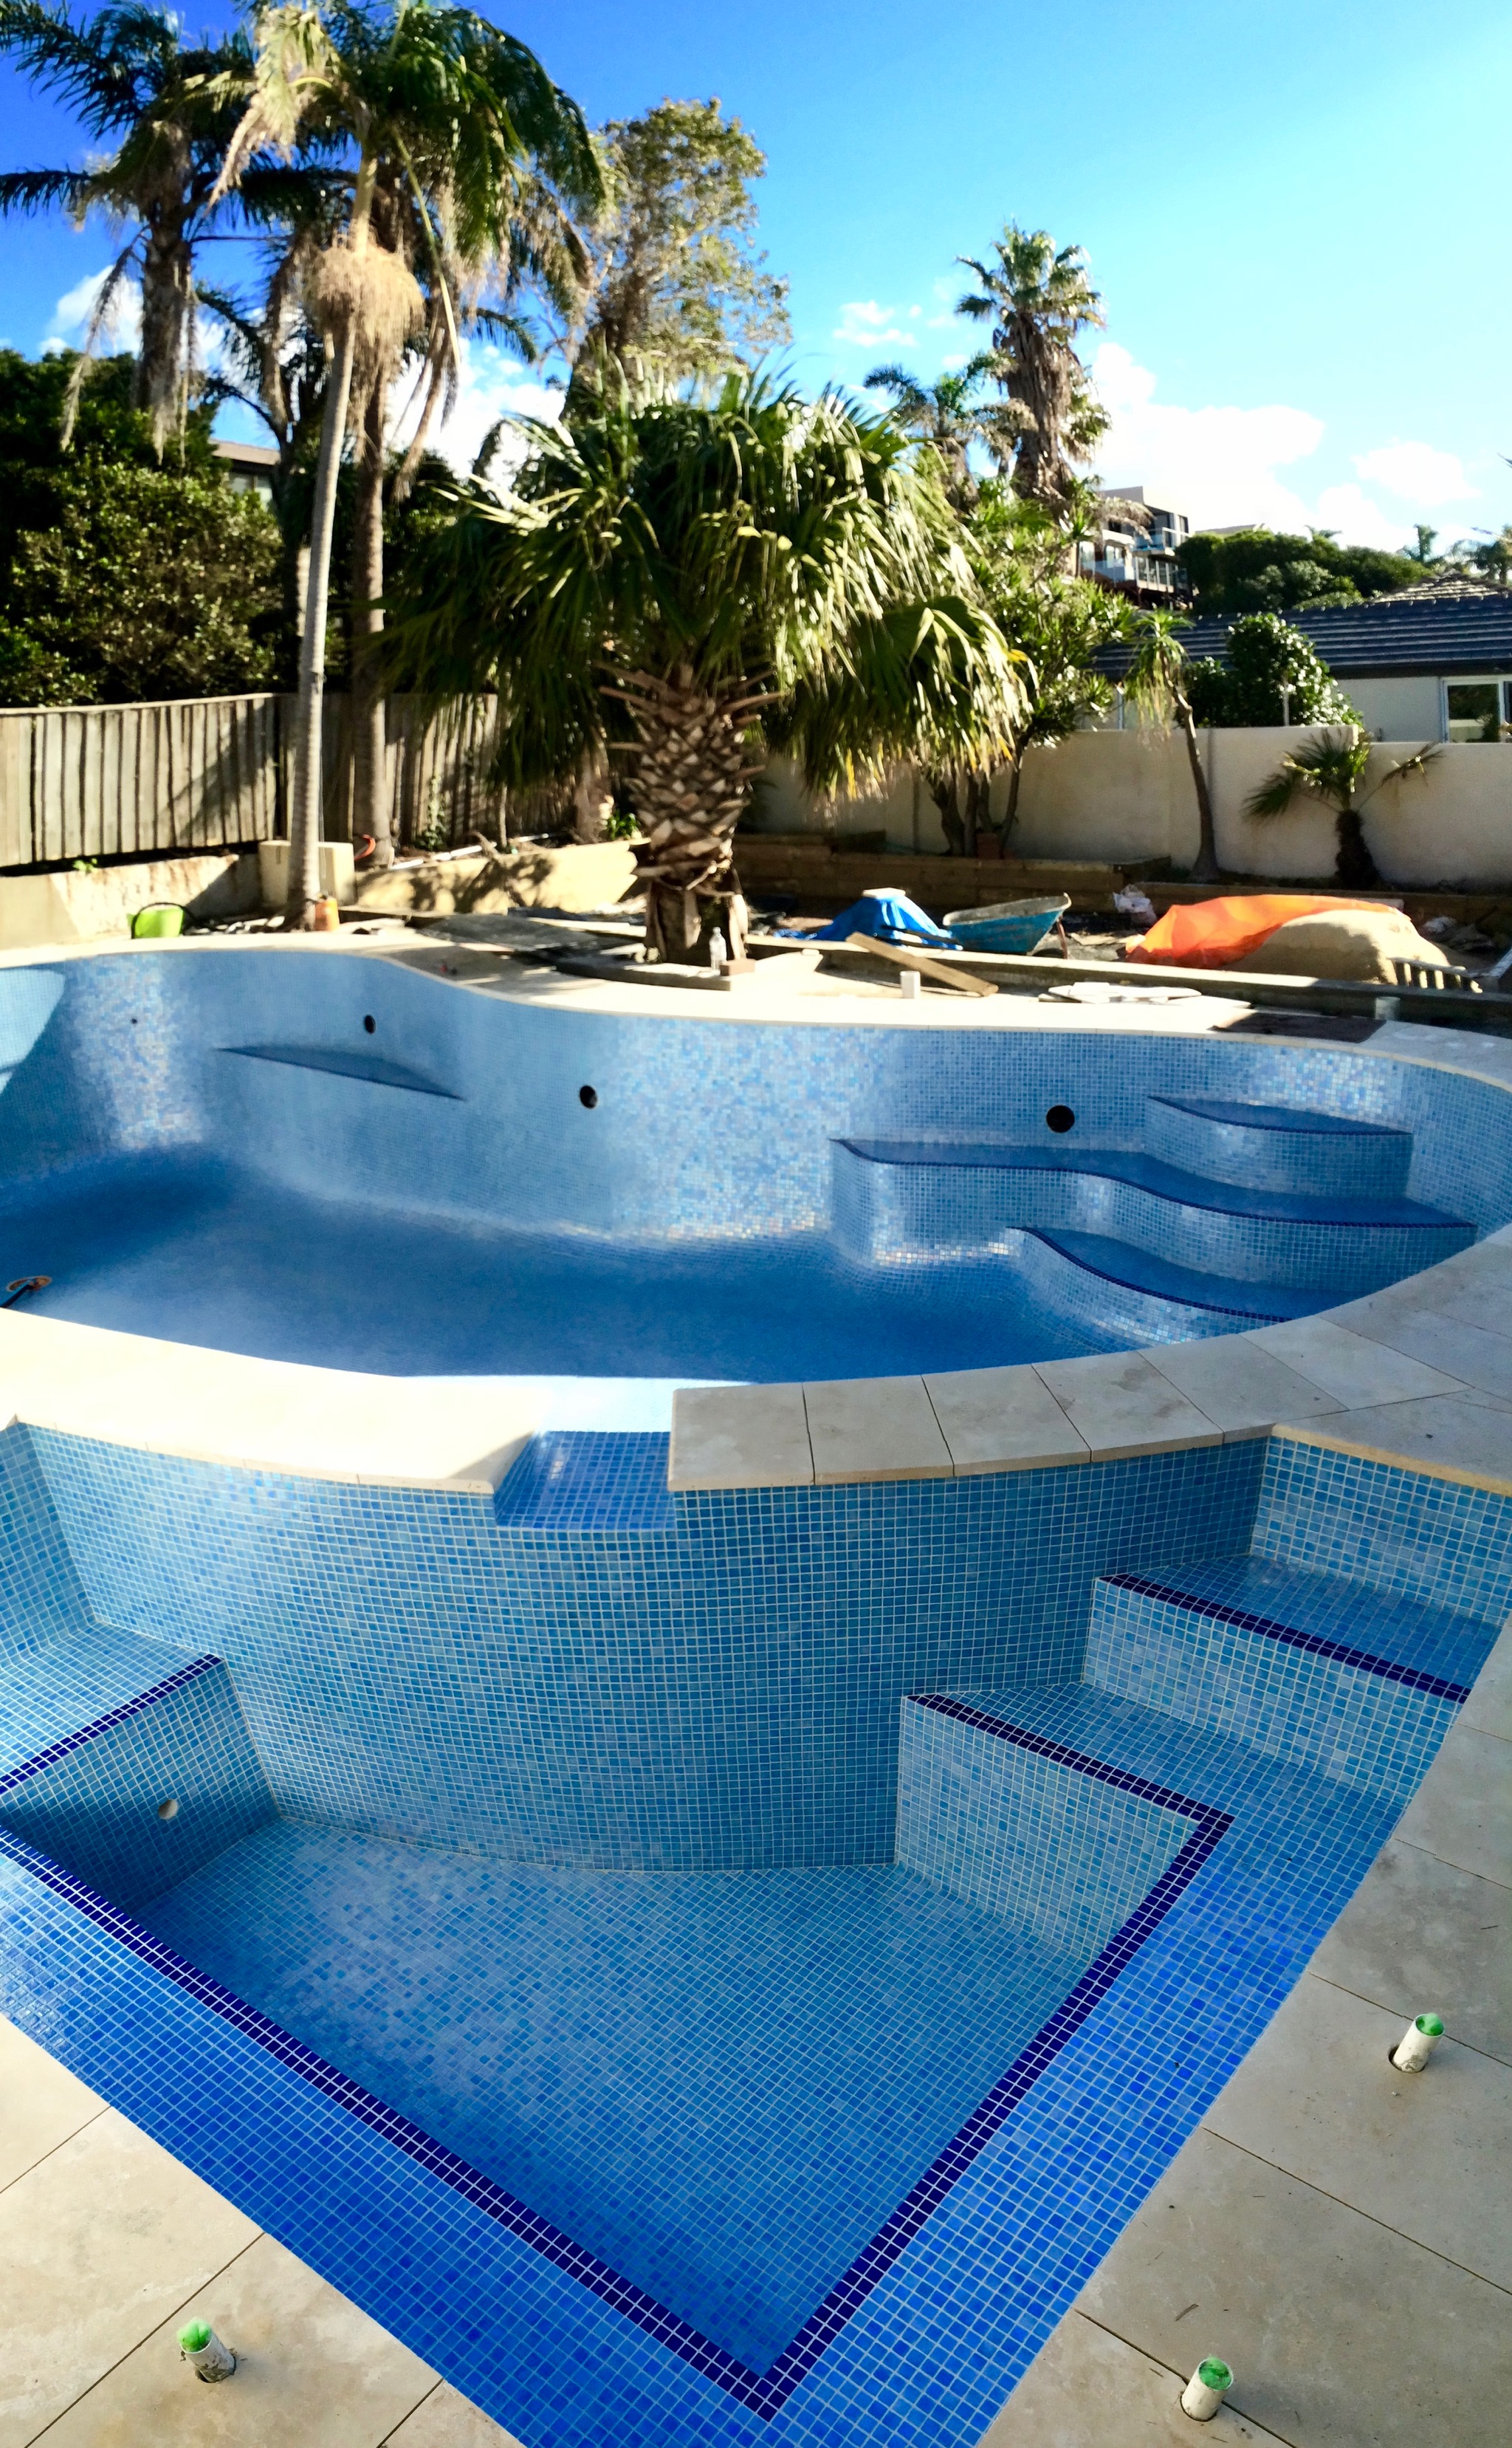 swimming pool tiling mosaic sydney renovations rendering copingFile8